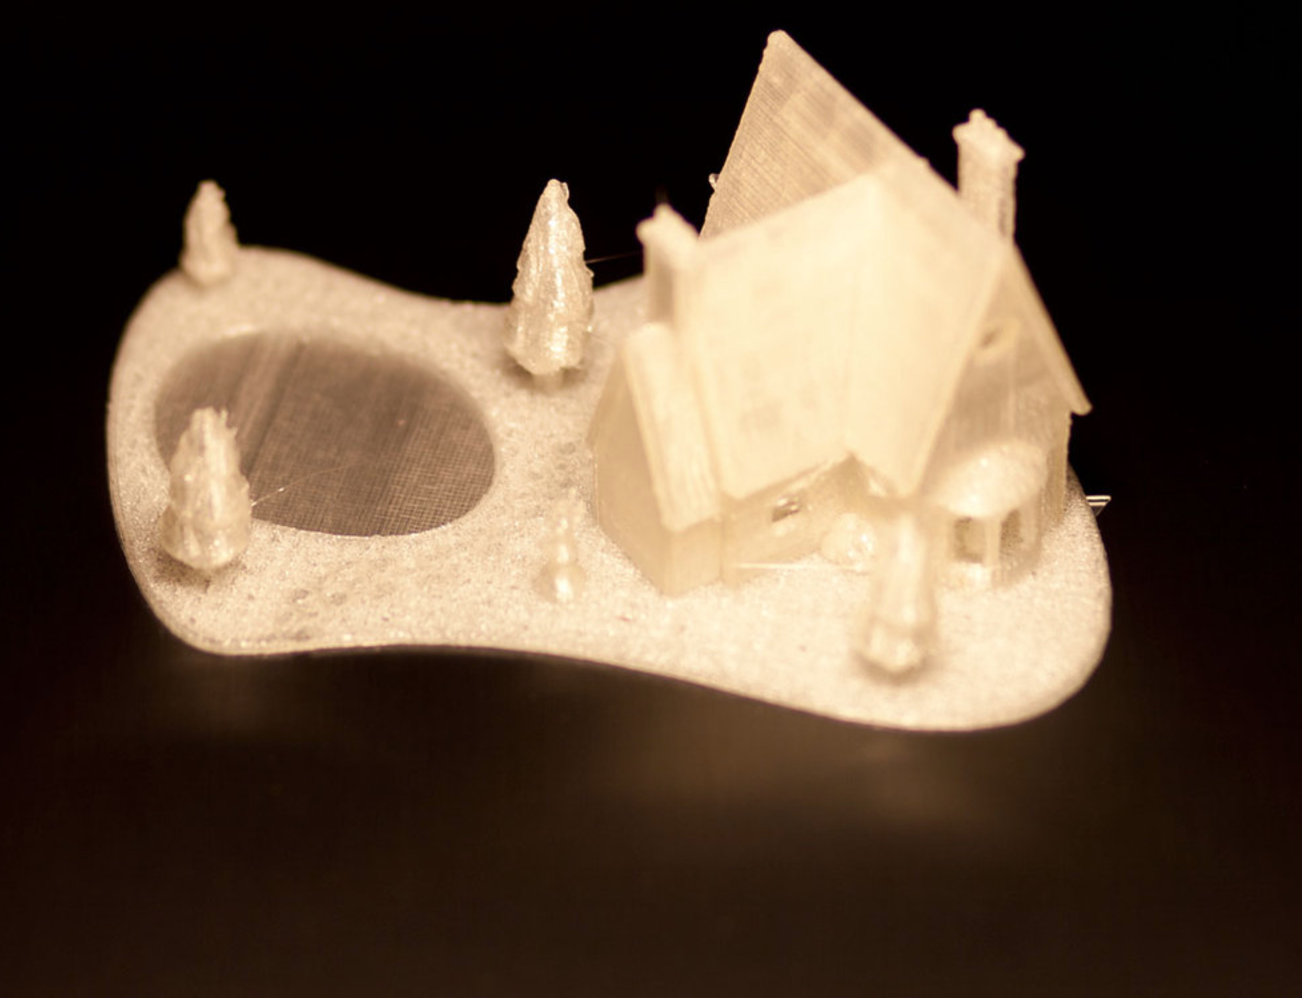 Capture d'écran 2016-12-08 à 12.44.32.png Download STL file Christmas House With frozen pond • 3D printer template, Mathi_